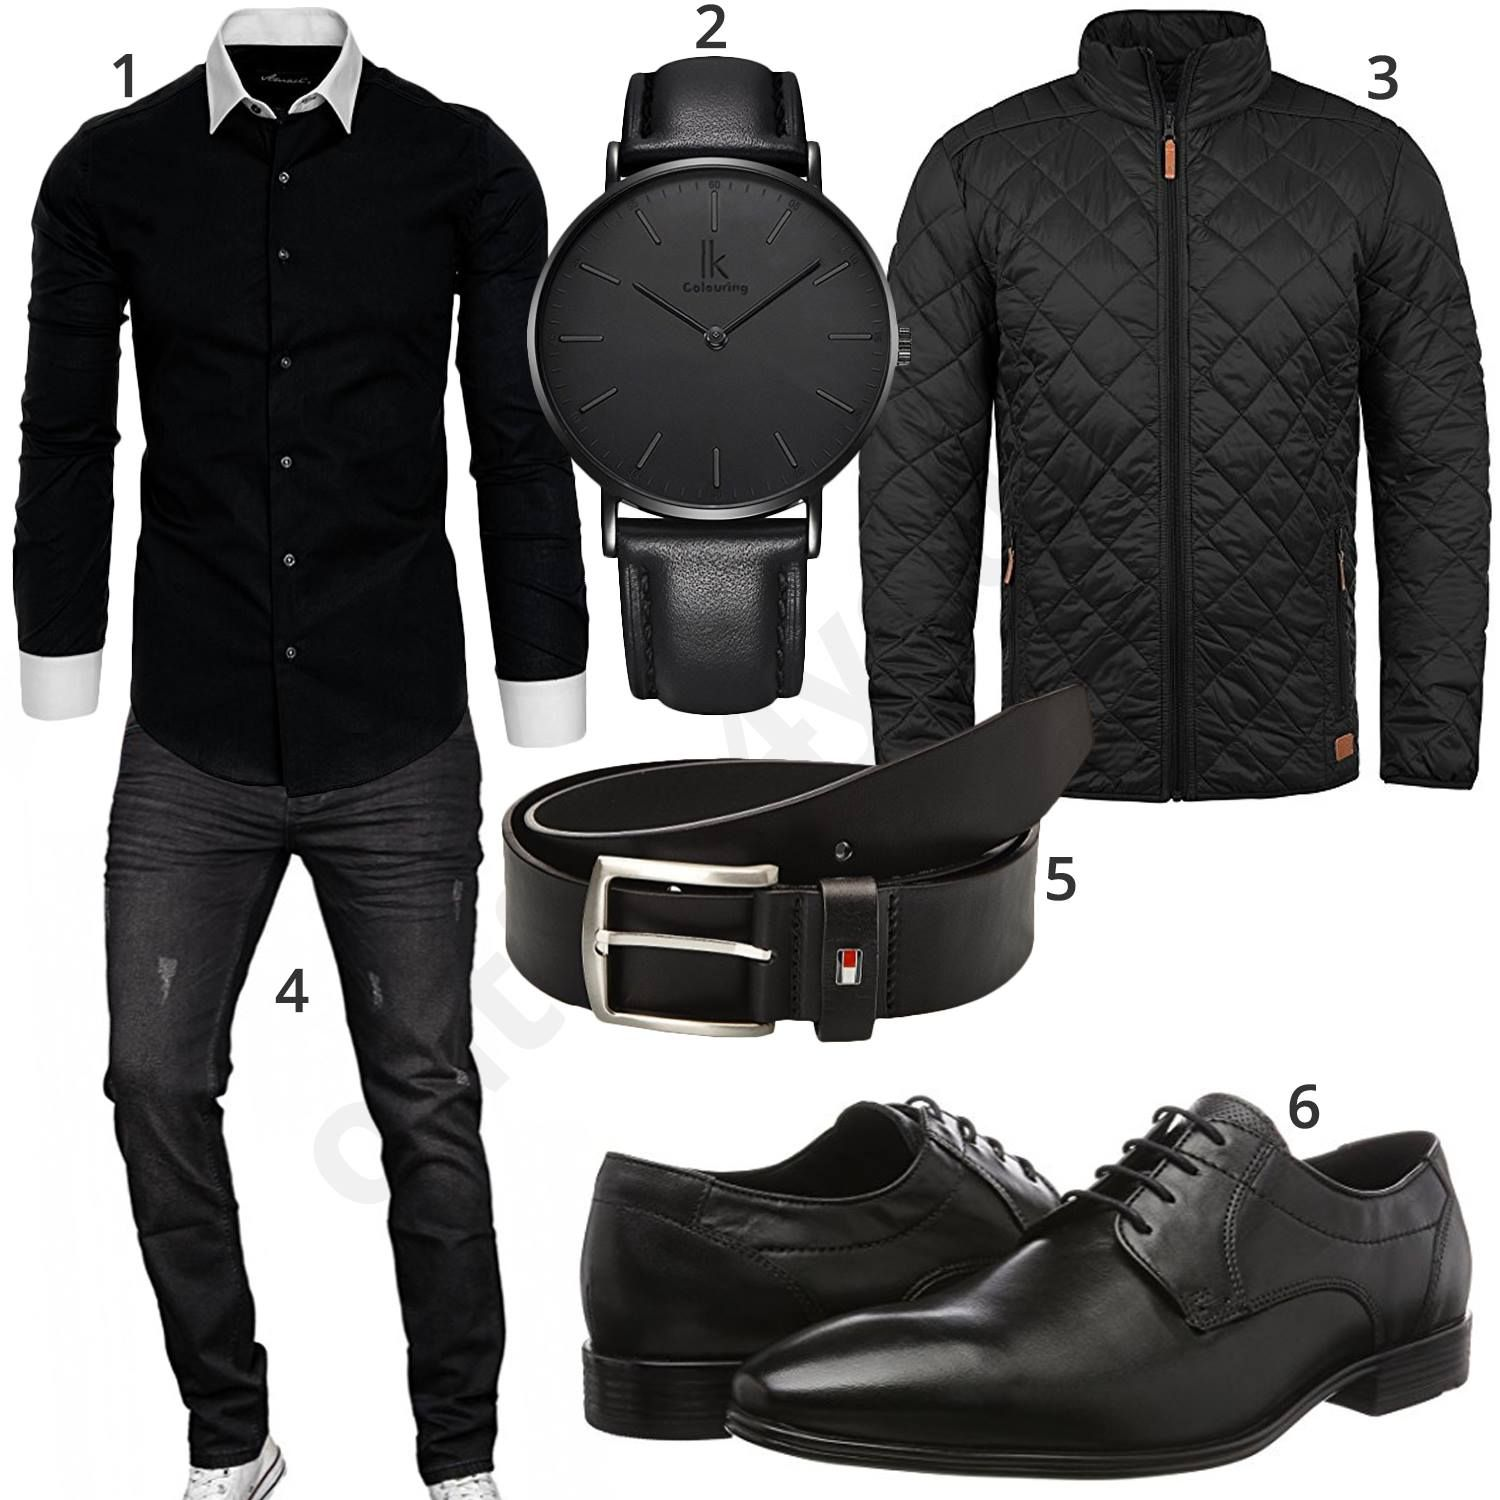 schwarzes business outfit mit hemd jeans und schuhen pinterest men 39 s fashion clothes and. Black Bedroom Furniture Sets. Home Design Ideas